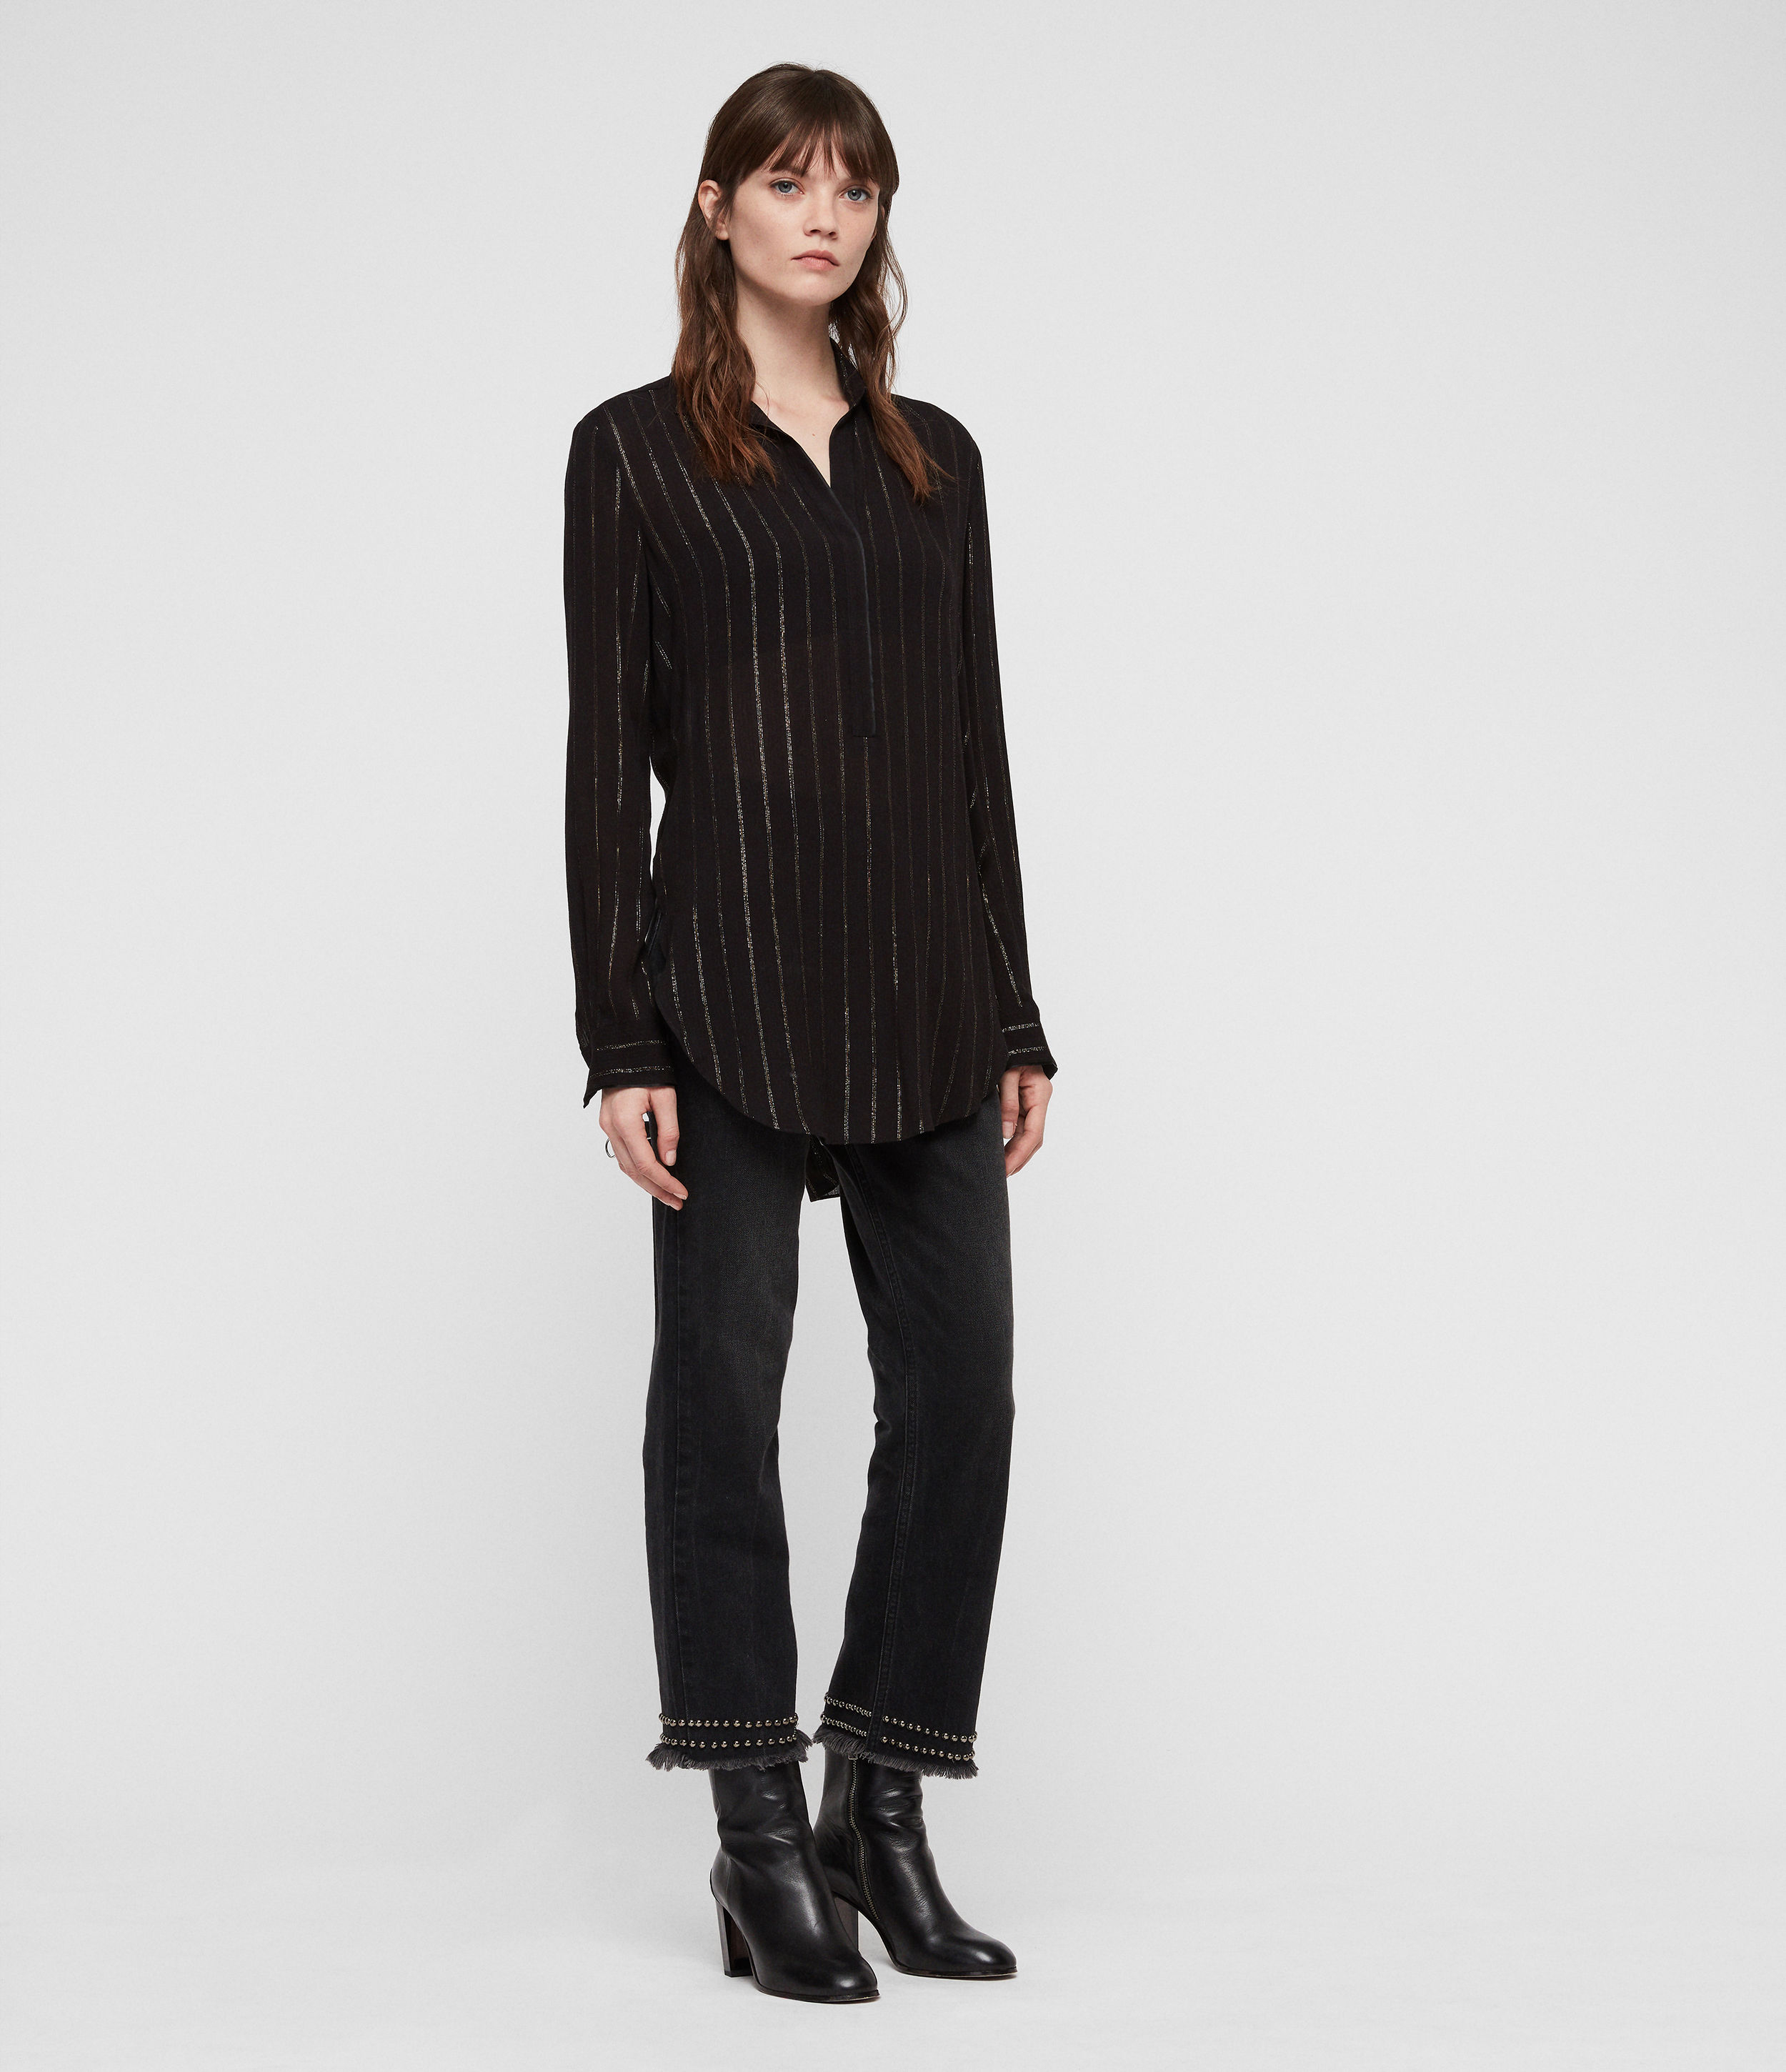 AllSaints Women's Stripe Relaxed Fit Keri Shirt, Black and Gold, Size: S